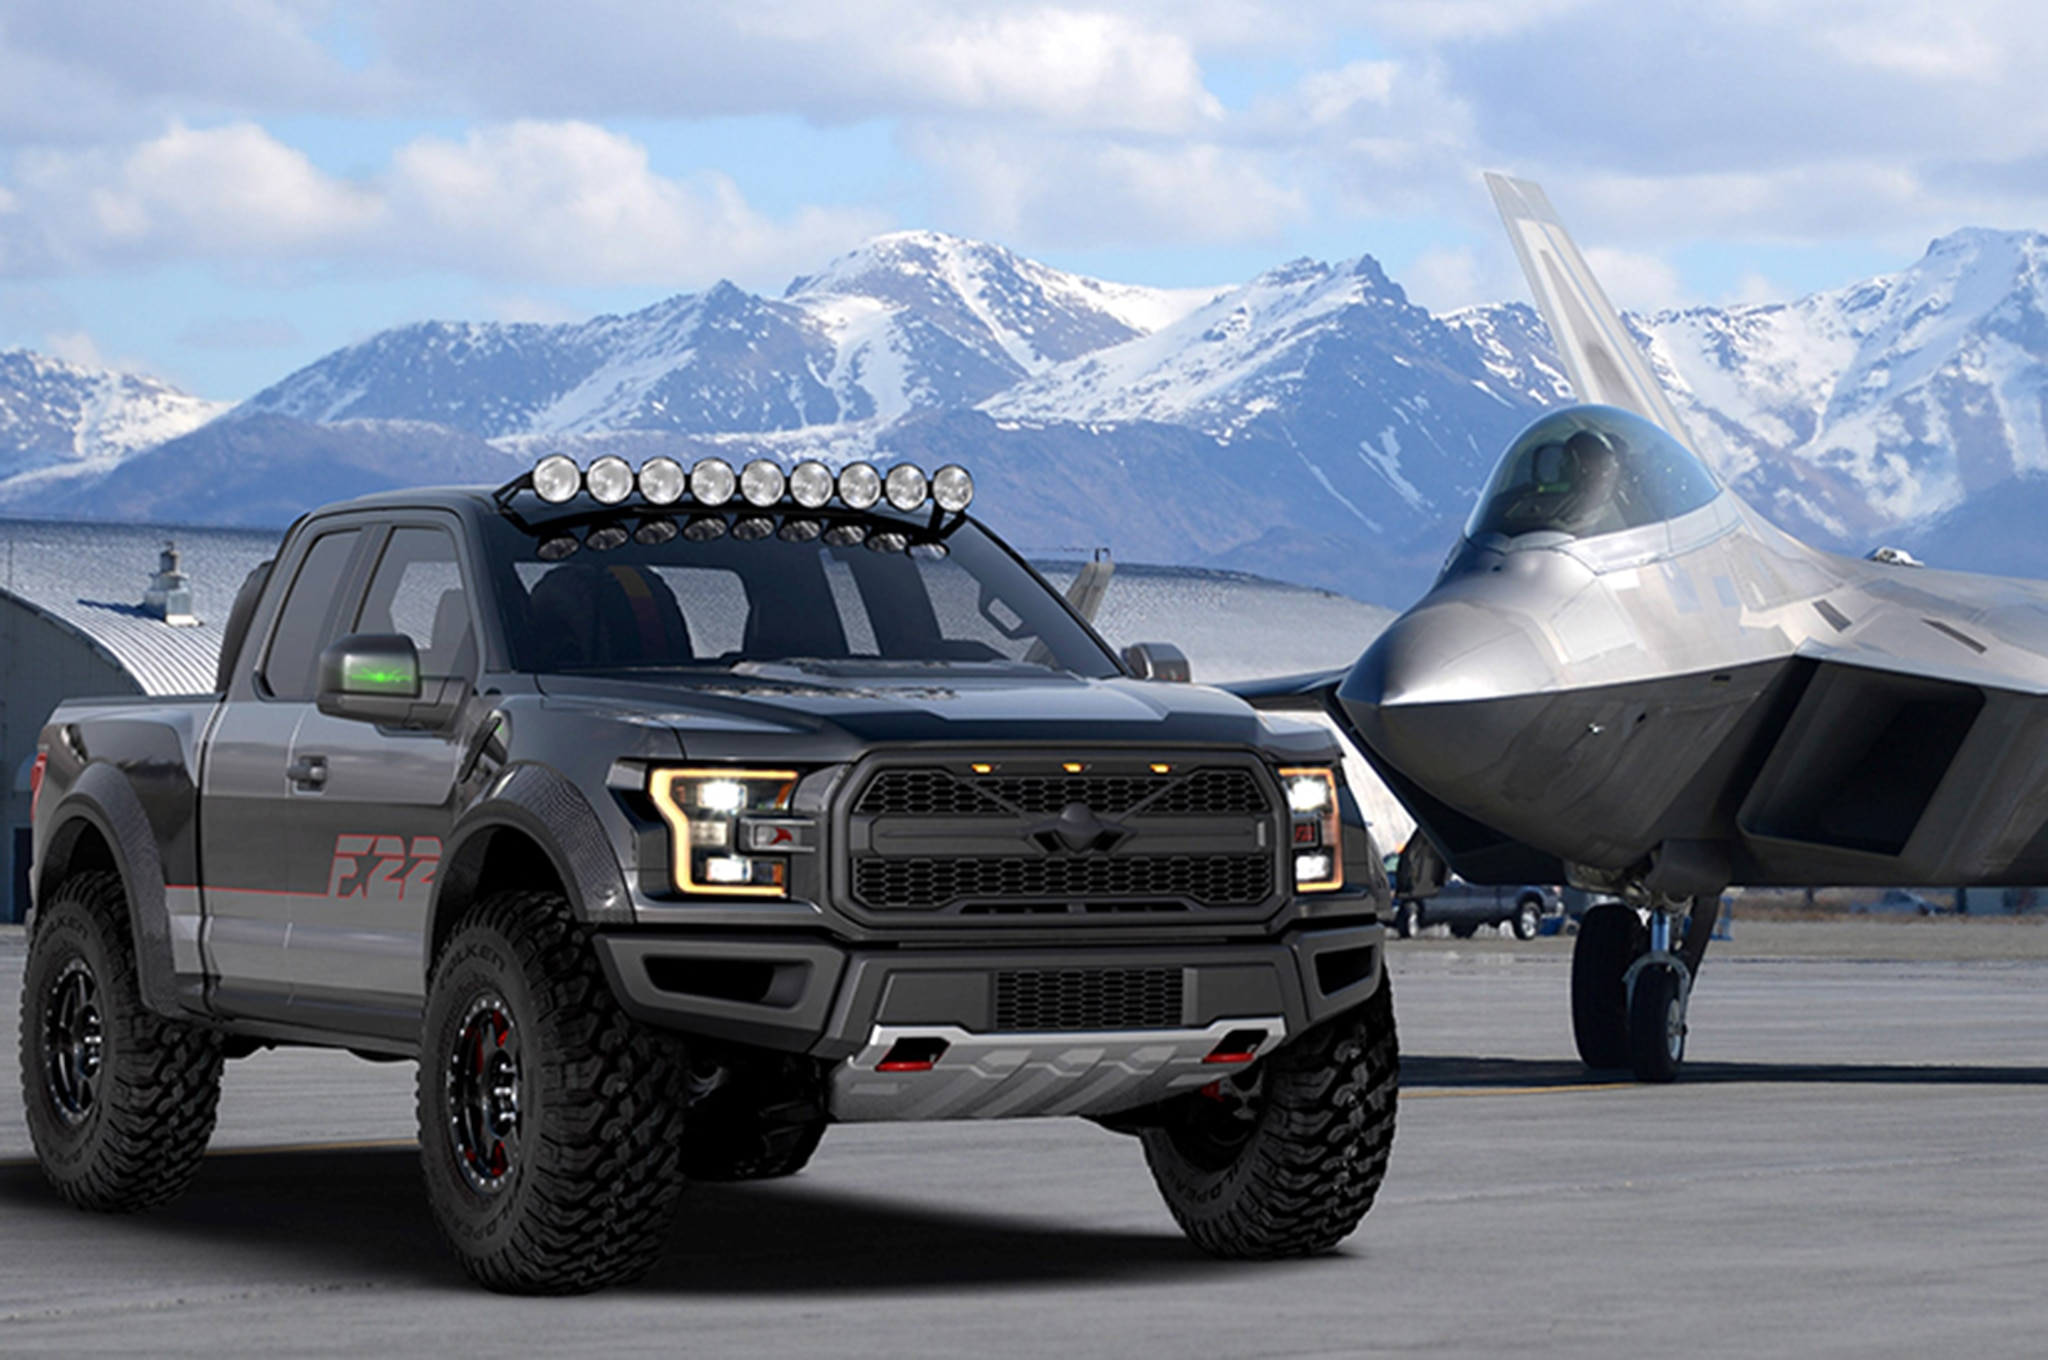 545 hp ford f 22 raptor f 150 set to soar automobile magazine. Black Bedroom Furniture Sets. Home Design Ideas